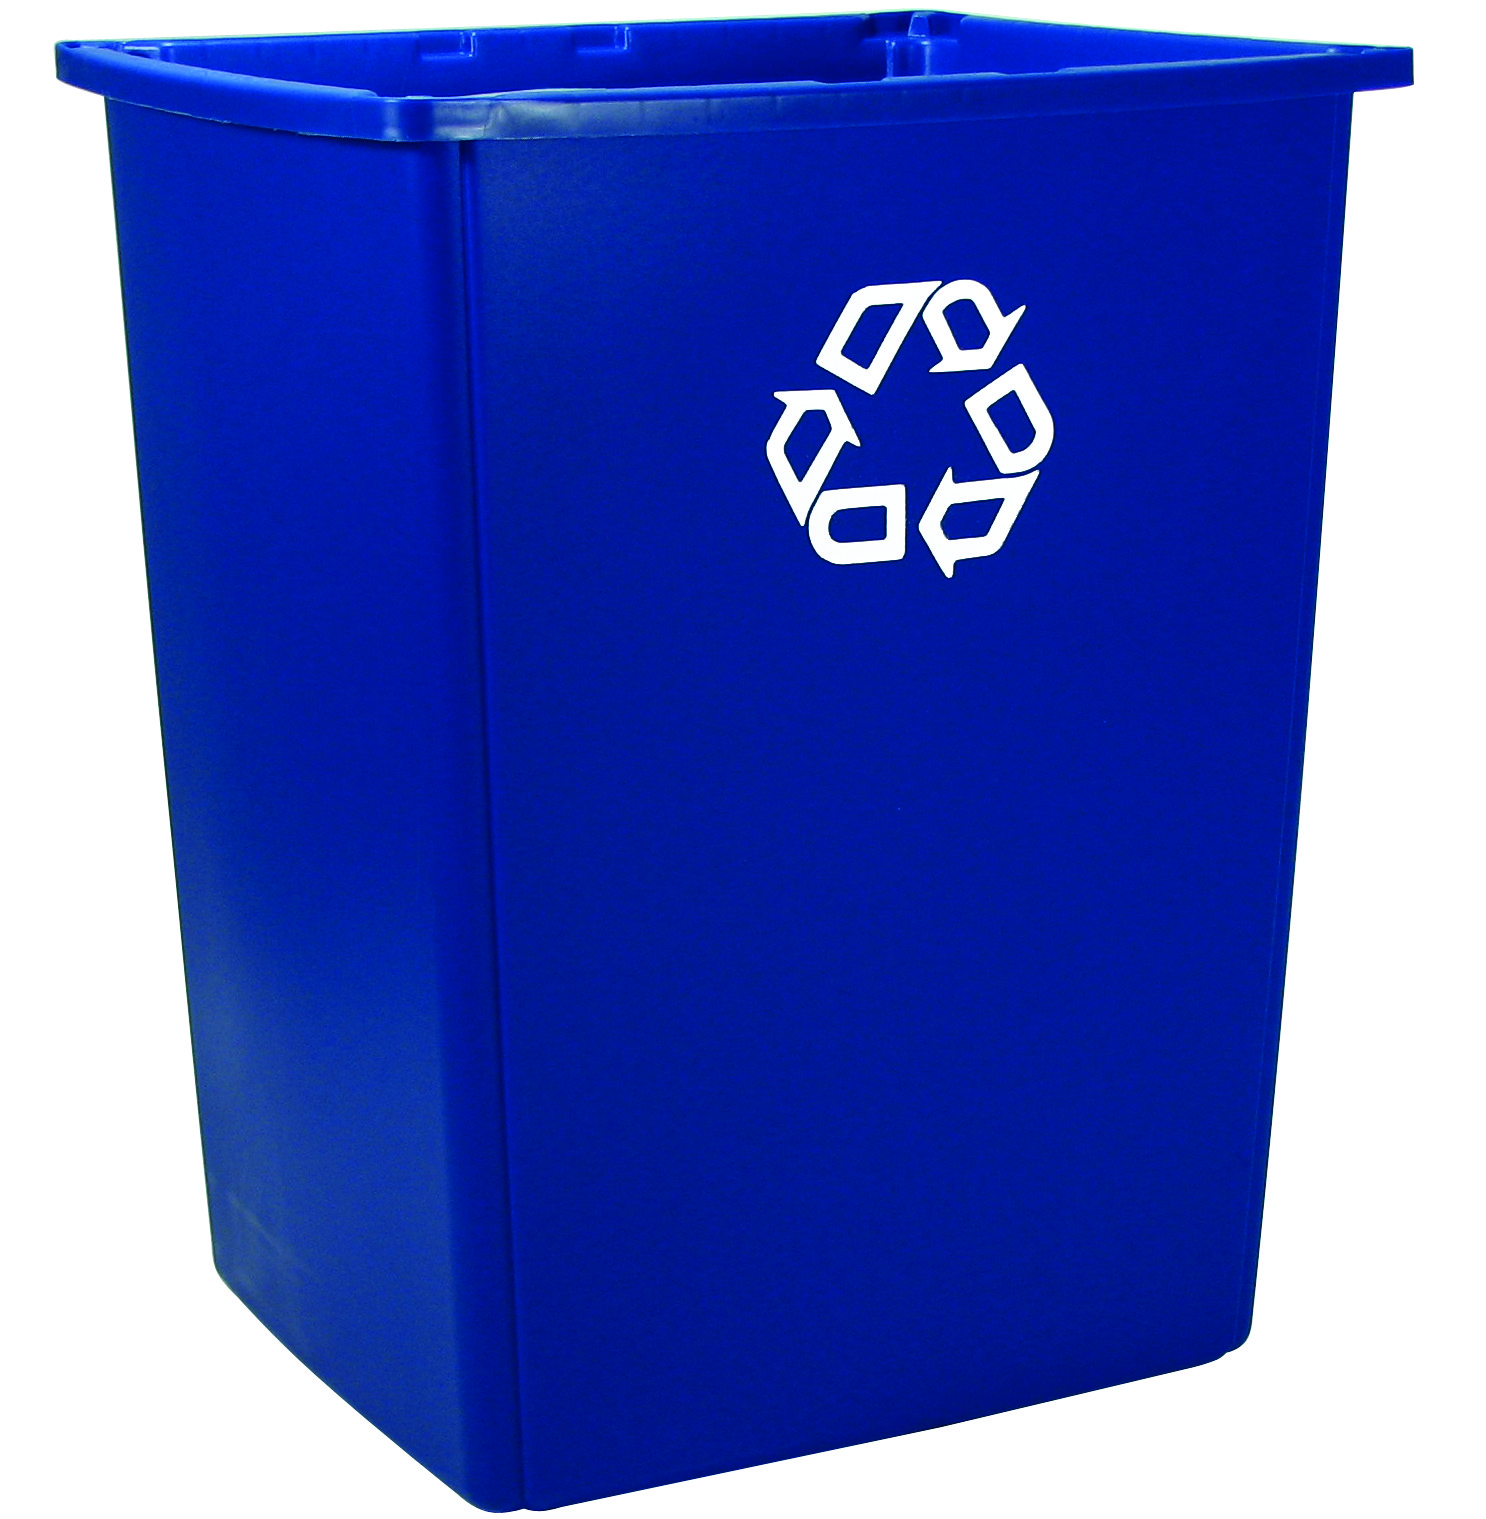 Blue rubbermaid glutton recycling container 56 gallons recycle away - Home depot recycling containers ...